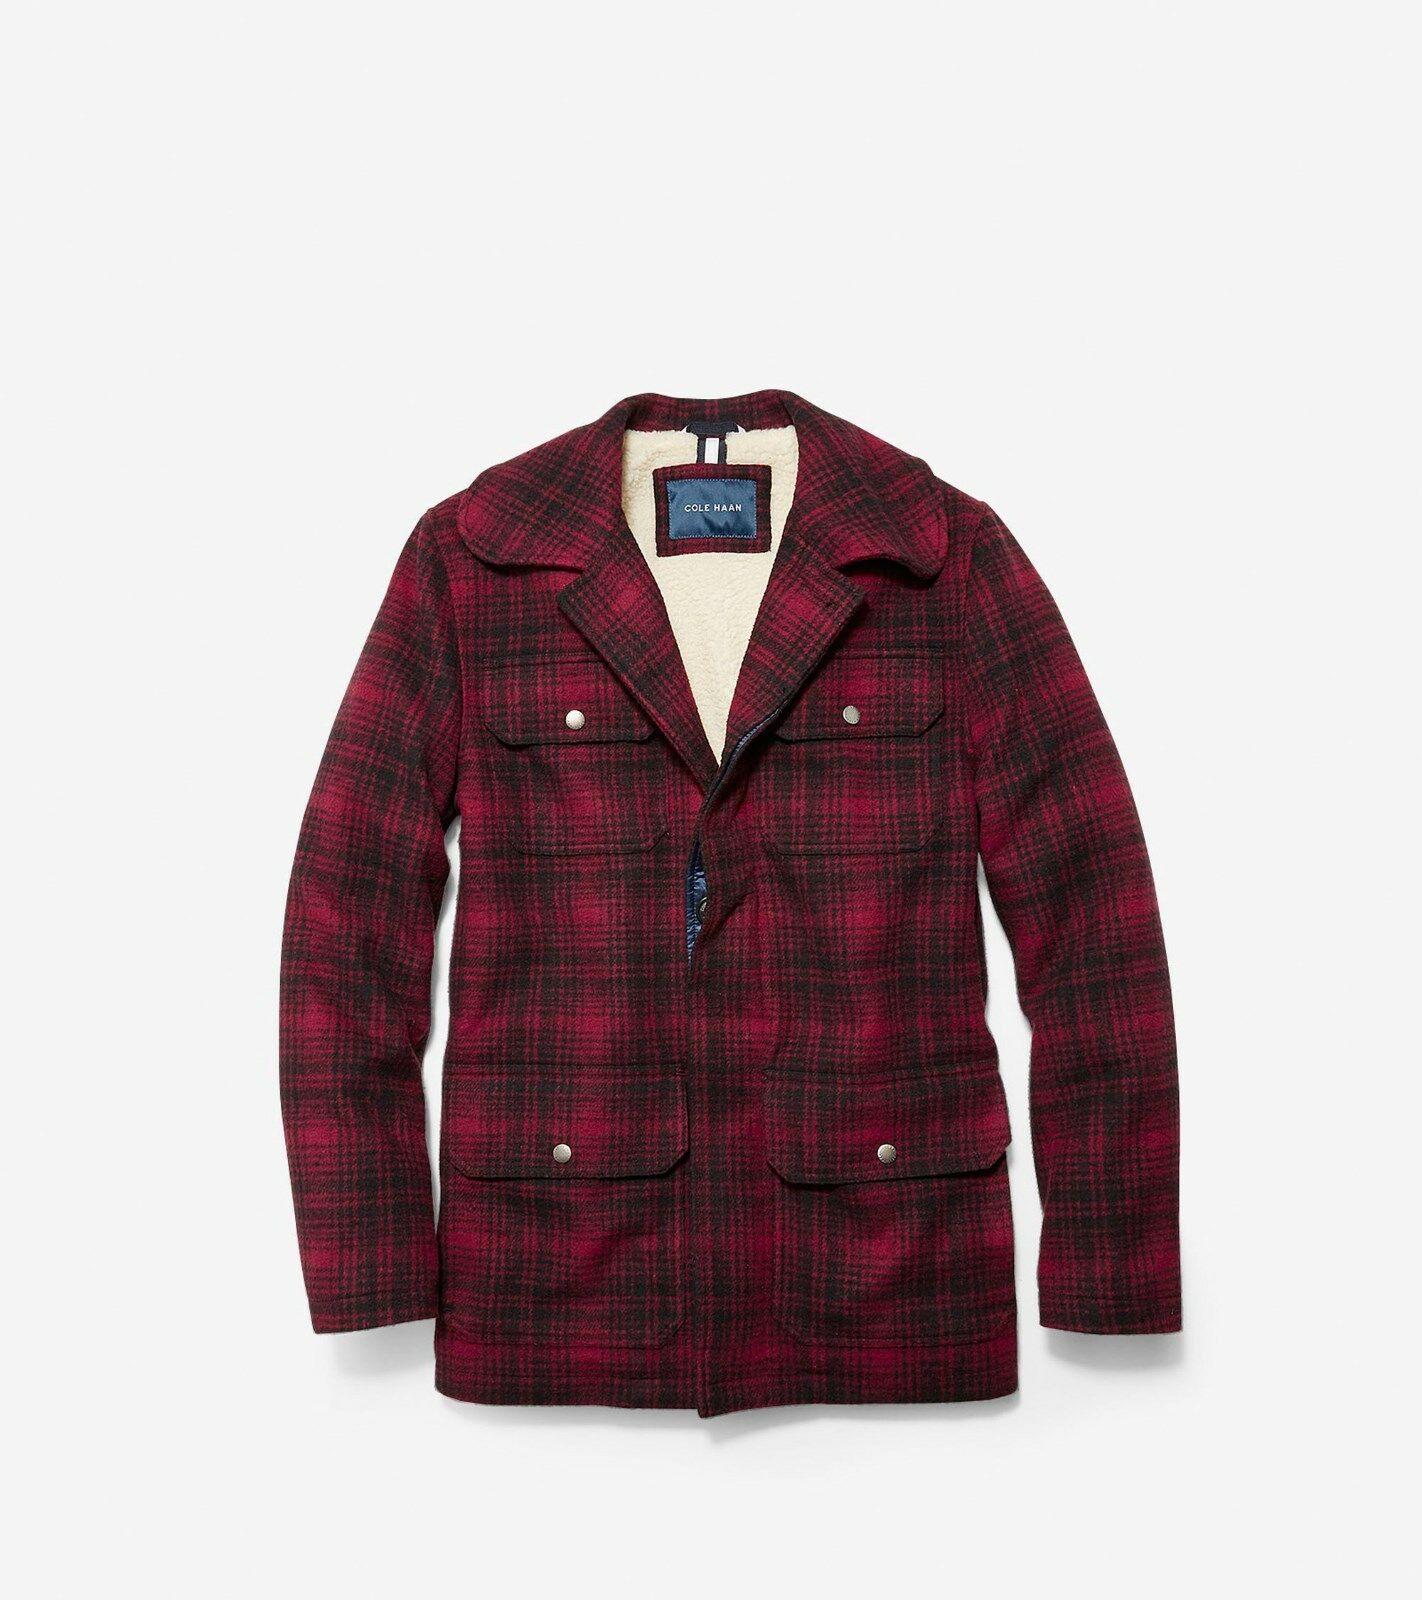 New COLE HAAN Plaid wolleSherpa Lining Classic Hunter Mountain Barn Ranch jacke